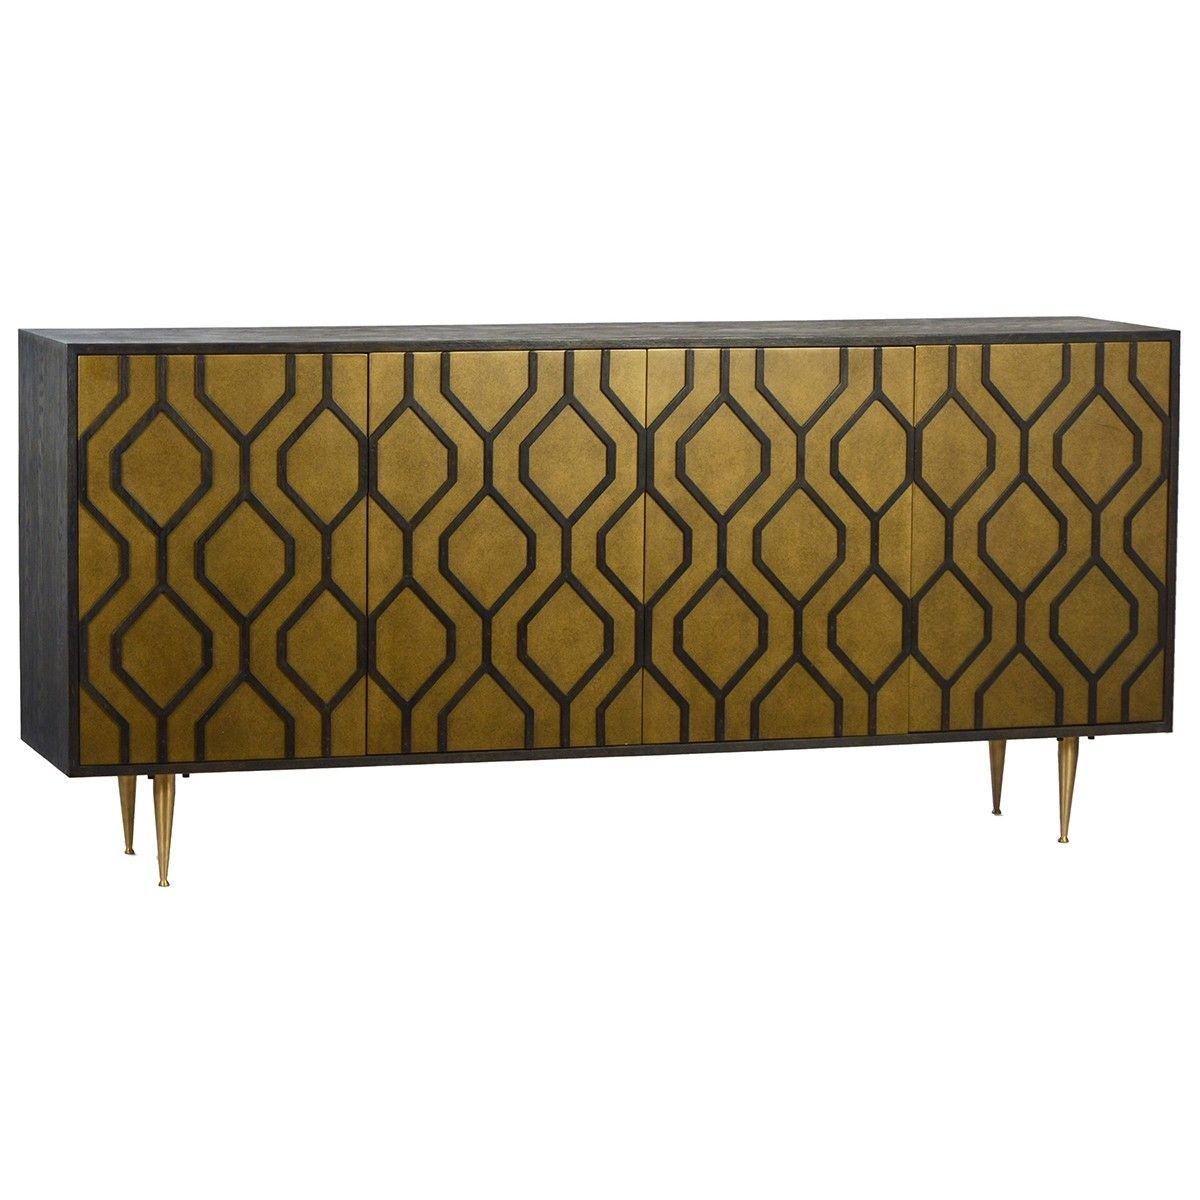 Dovetail Devon Sideboard - 4 Door In 2019 | Cabinets + intended for Line Geo Credenzas (Image 12 of 30)